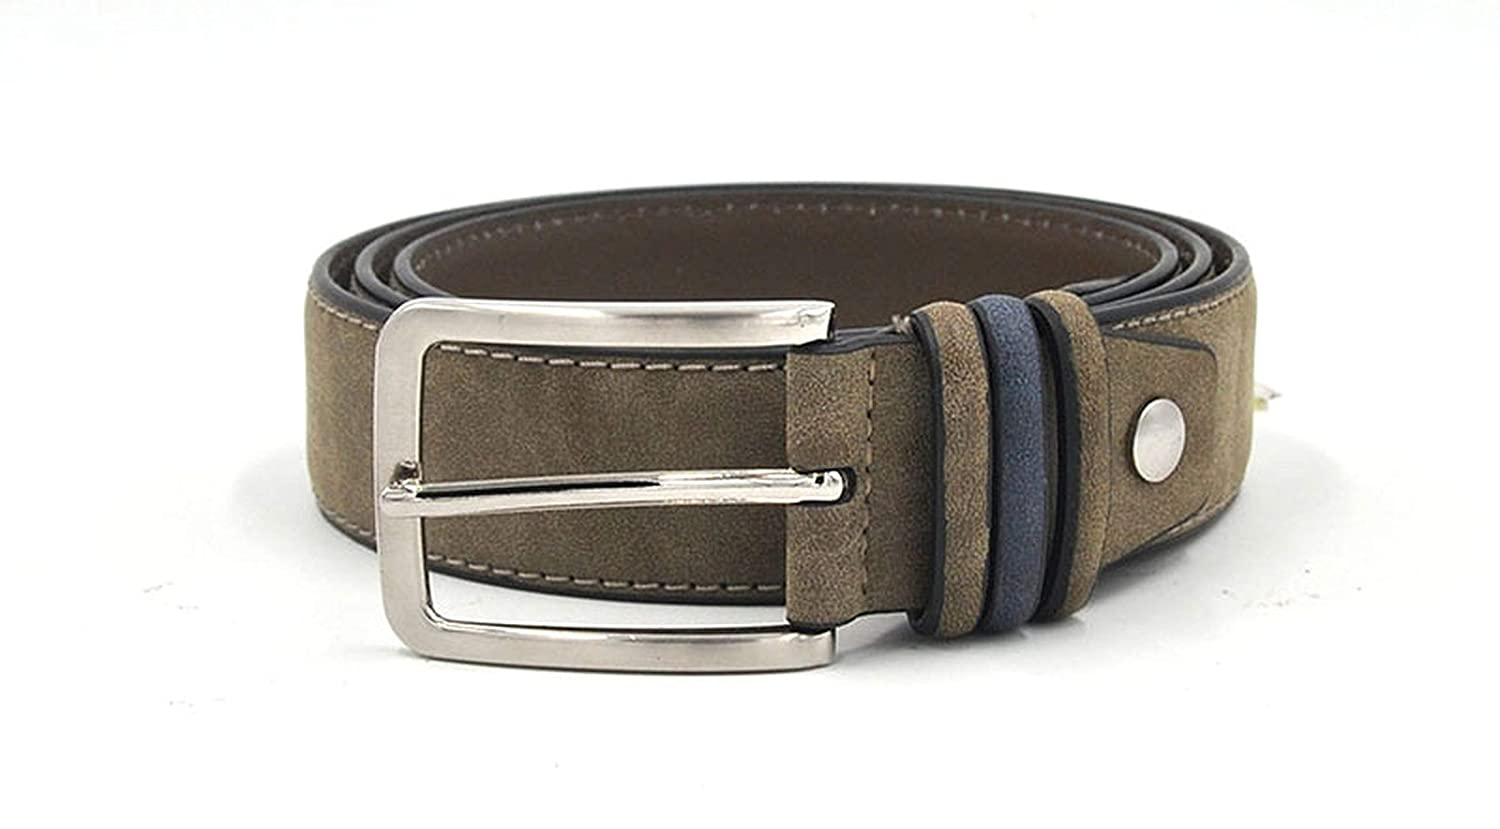 Brushed Pu Face Leisure Belts High Fashion Men Leather Belts For Jeans For Man With 110 cm 115cm 120 cm 125cm 130 cm